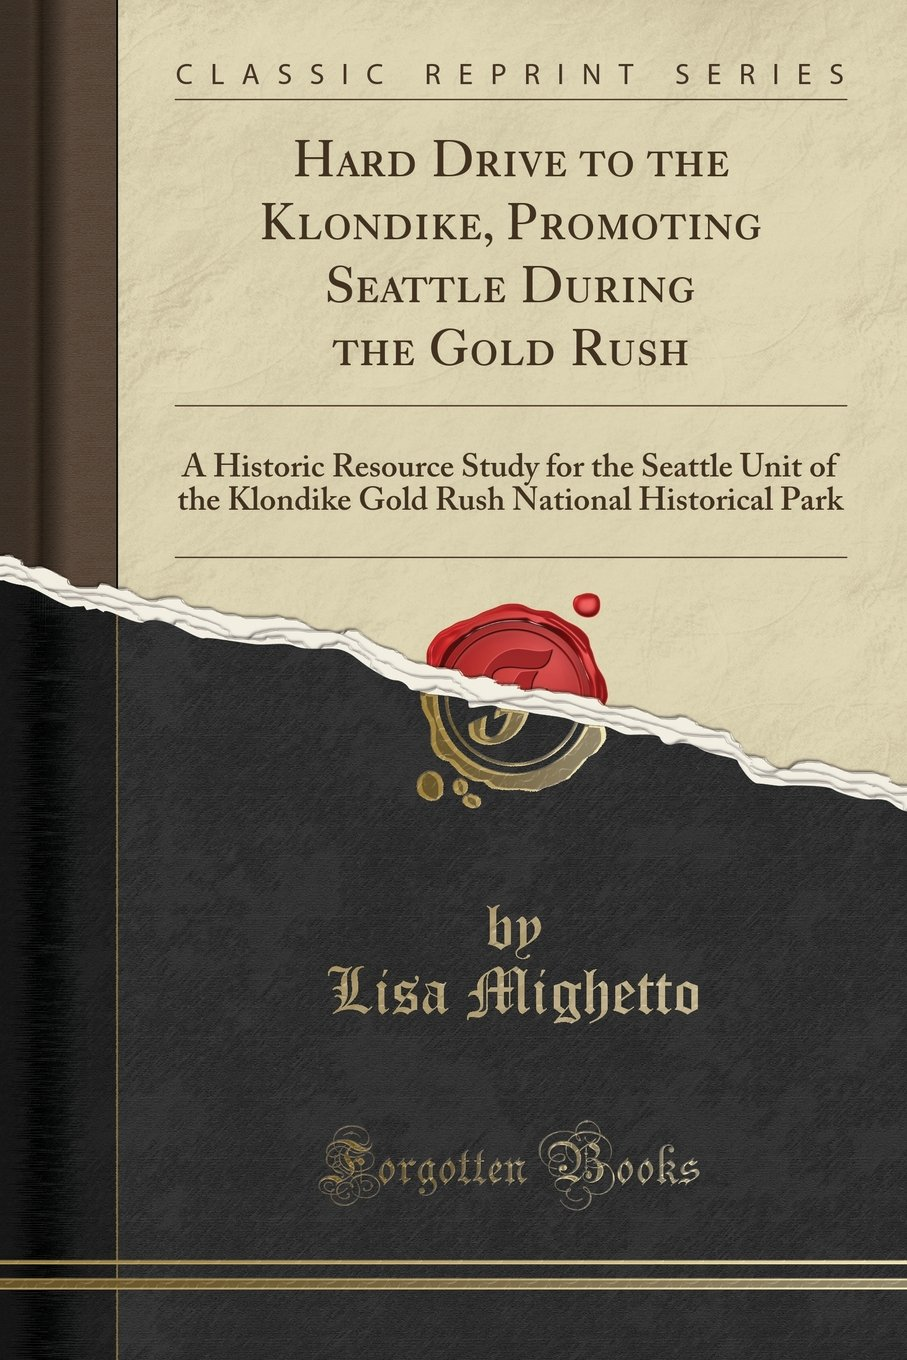 Download Hard Drive to the Klondike, Promoting Seattle During the Gold Rush: A Historic Resource Study for the Seattle Unit of the Klondike Gold Rush National Historical Park (Classic Reprint) ebook